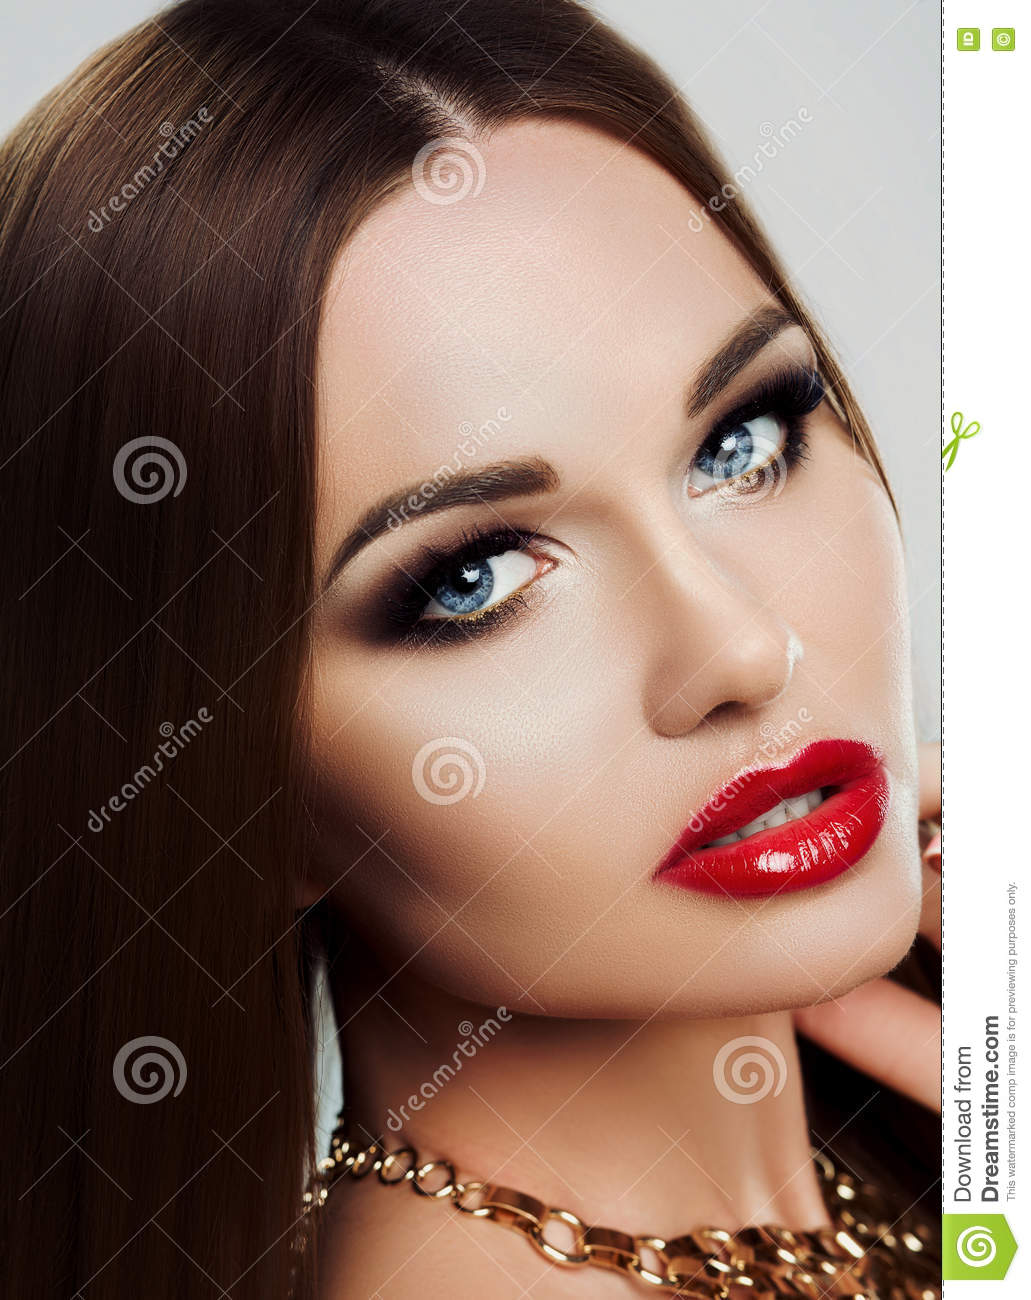 Makeup For Blue Eyes And Red Lips - Makeup Vidalondon